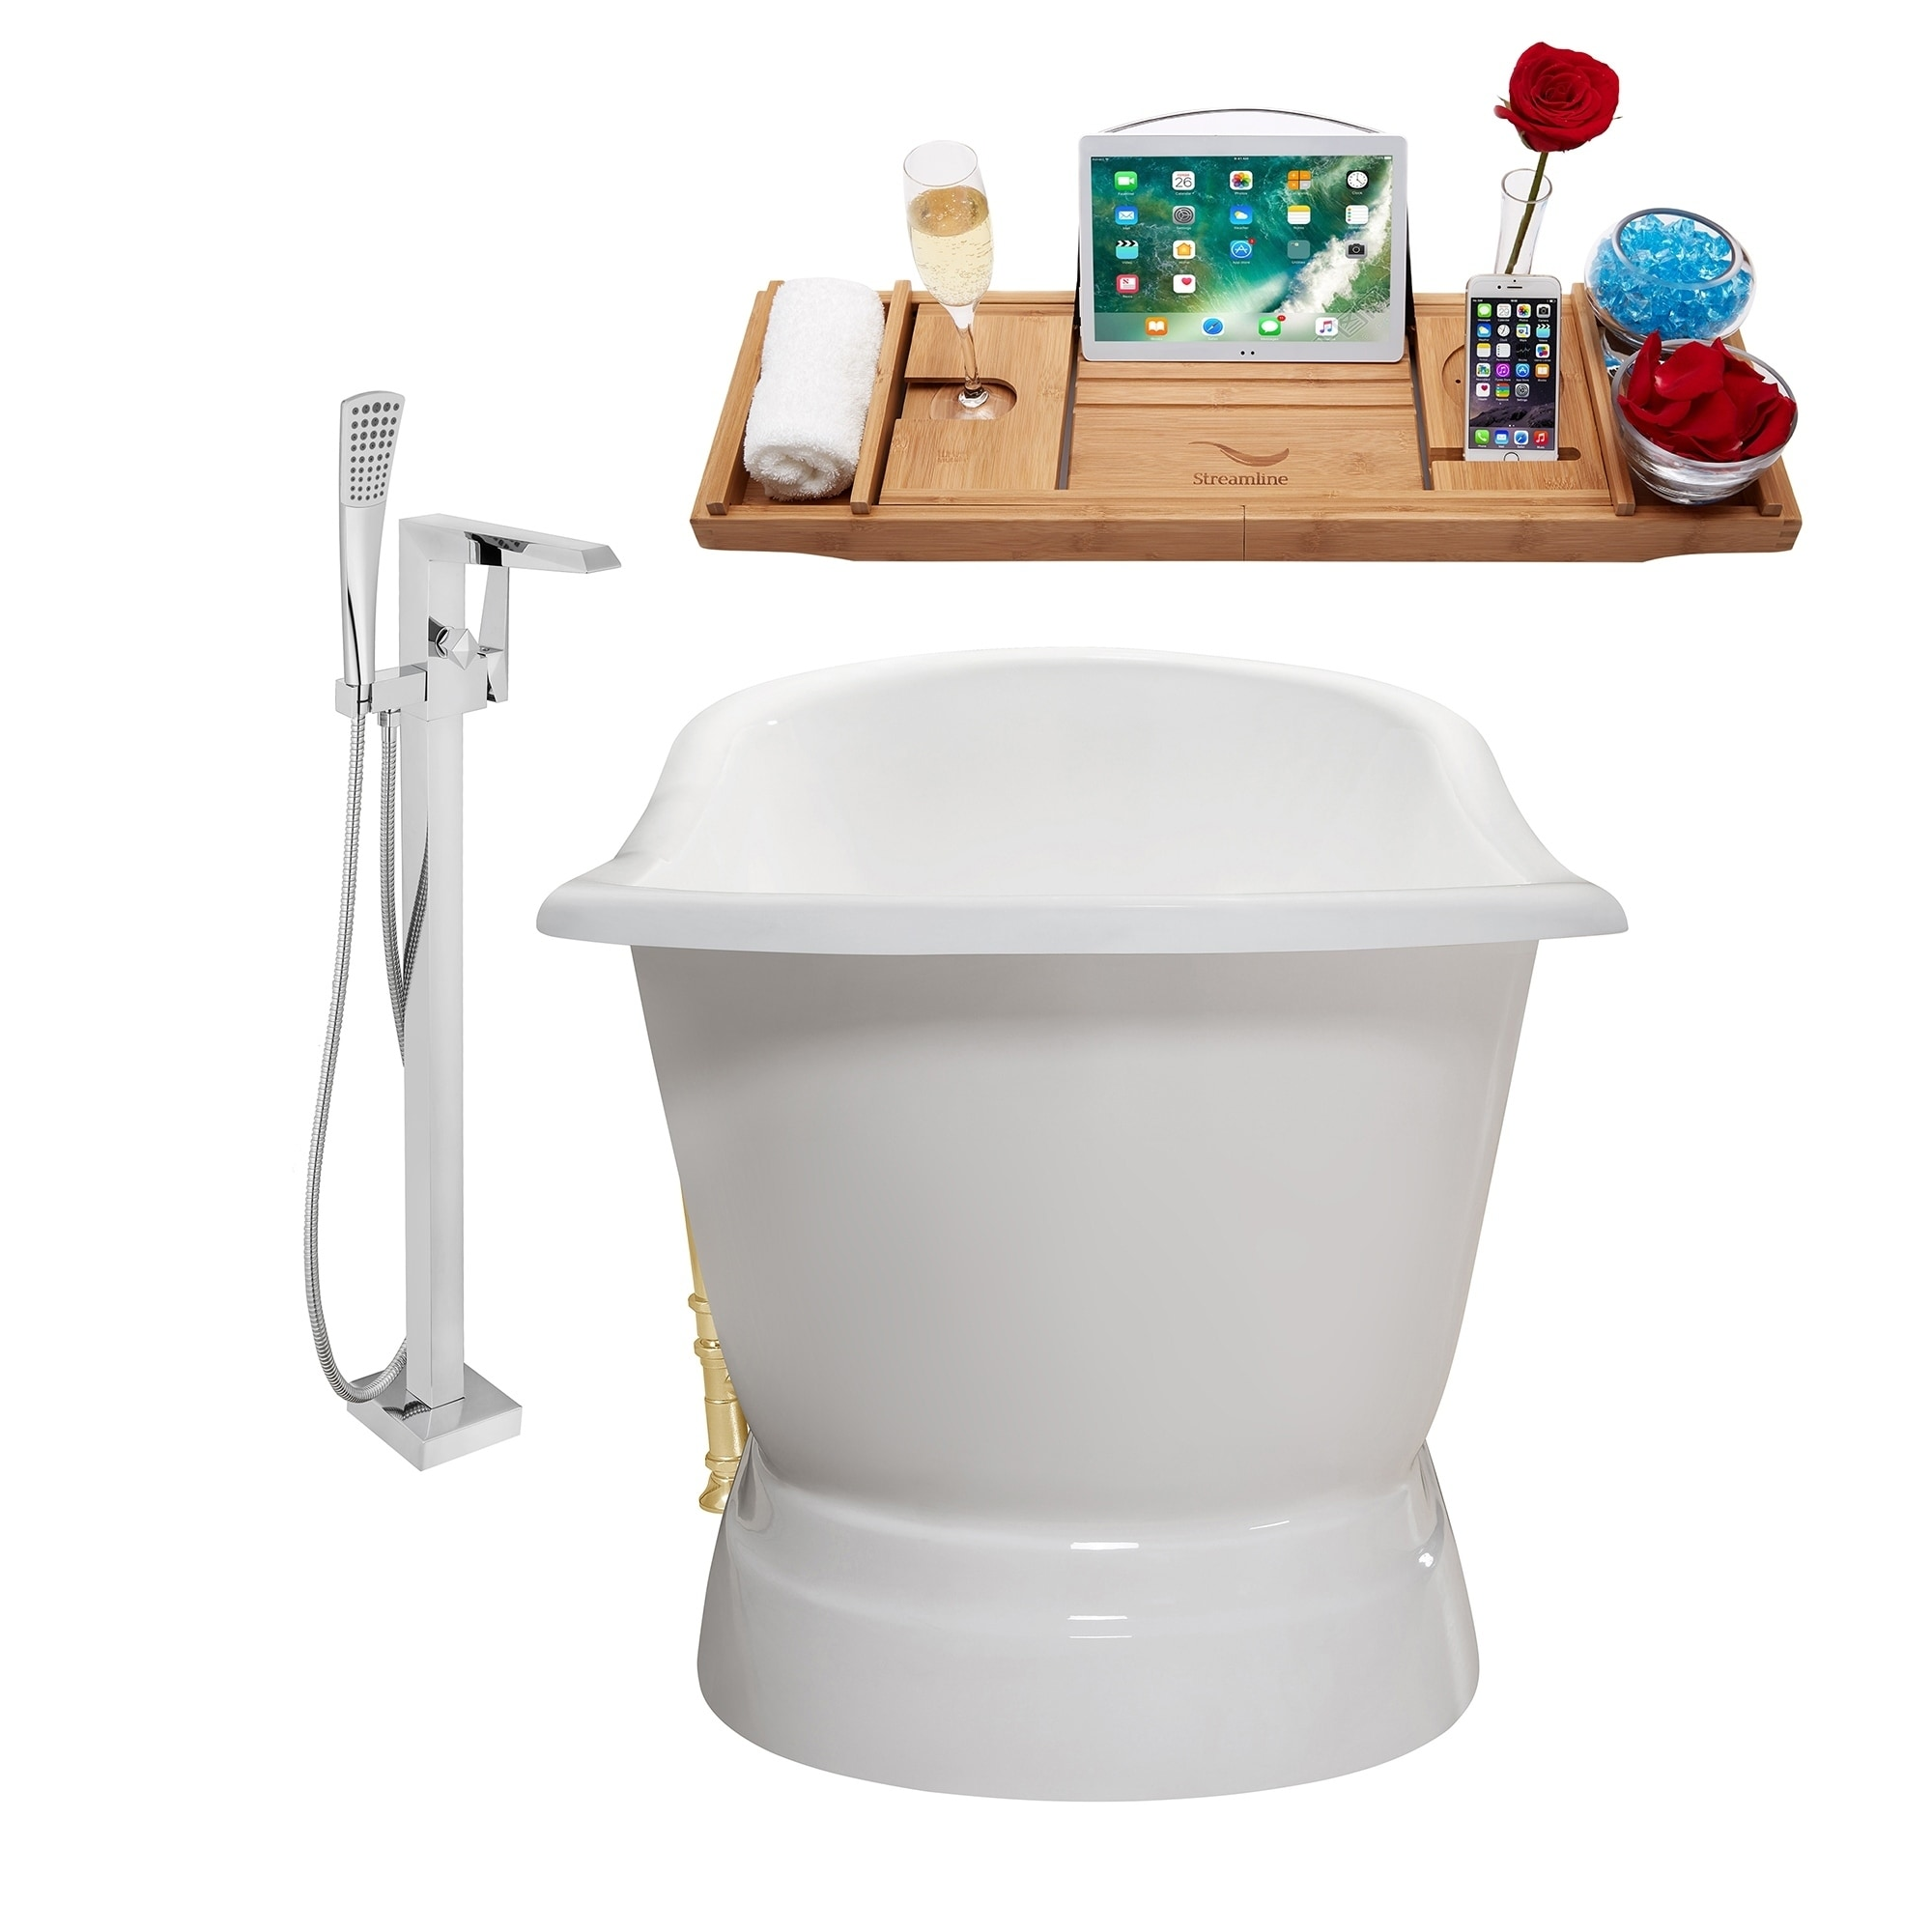 Shop Cast Iron Tub, Faucet and Tray Set 71\